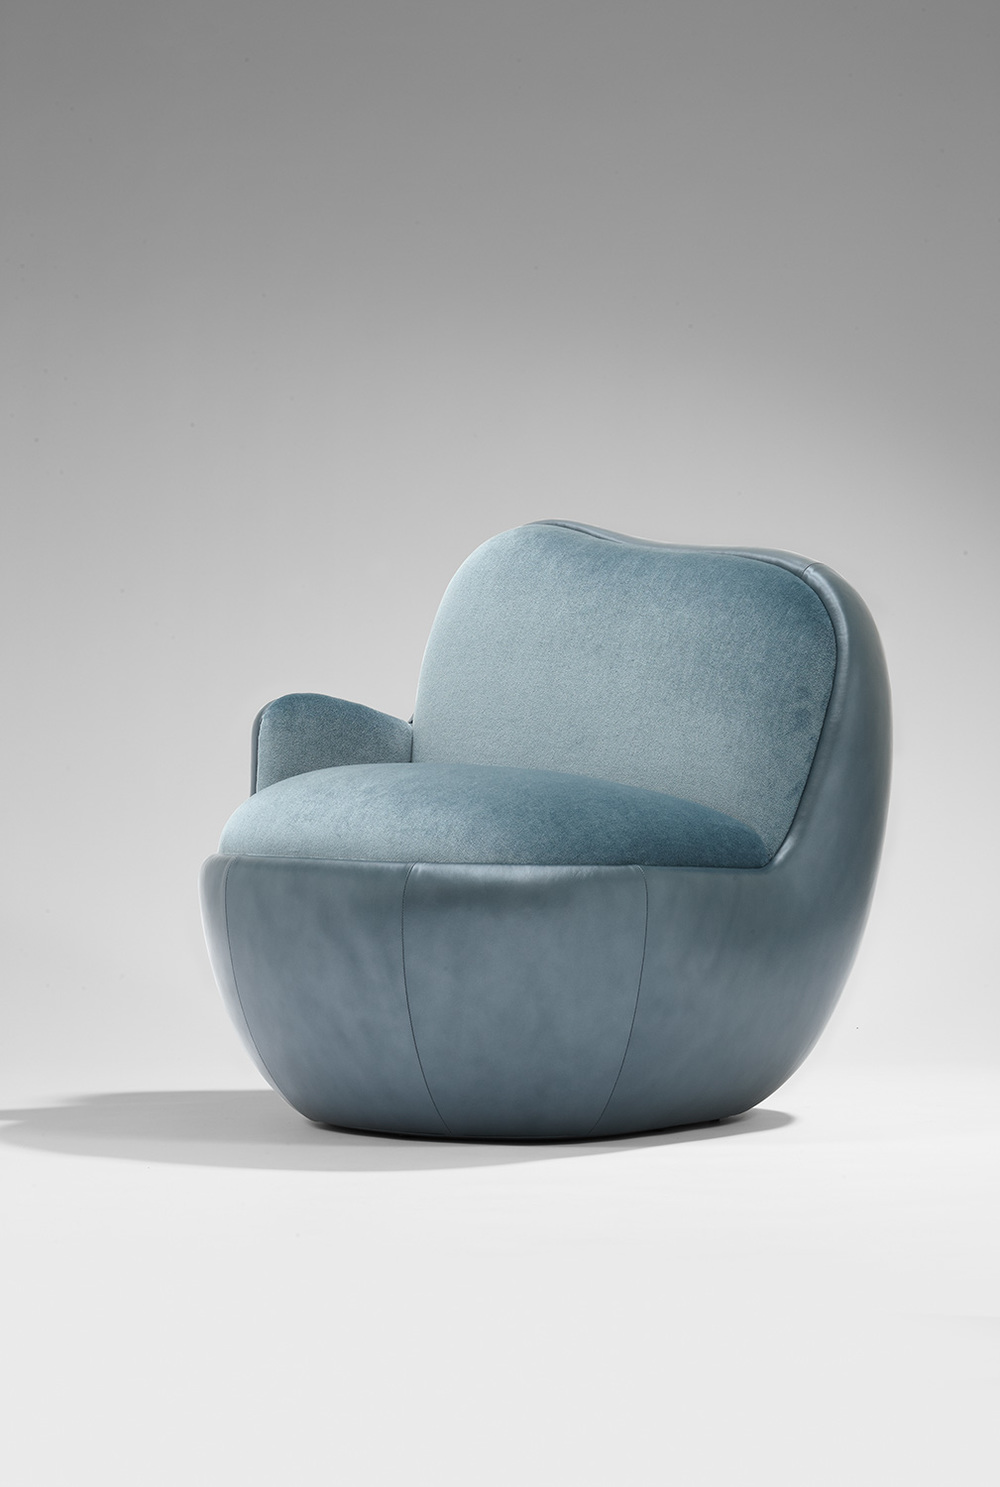 MB Armchair 'Ball' -2.jpg